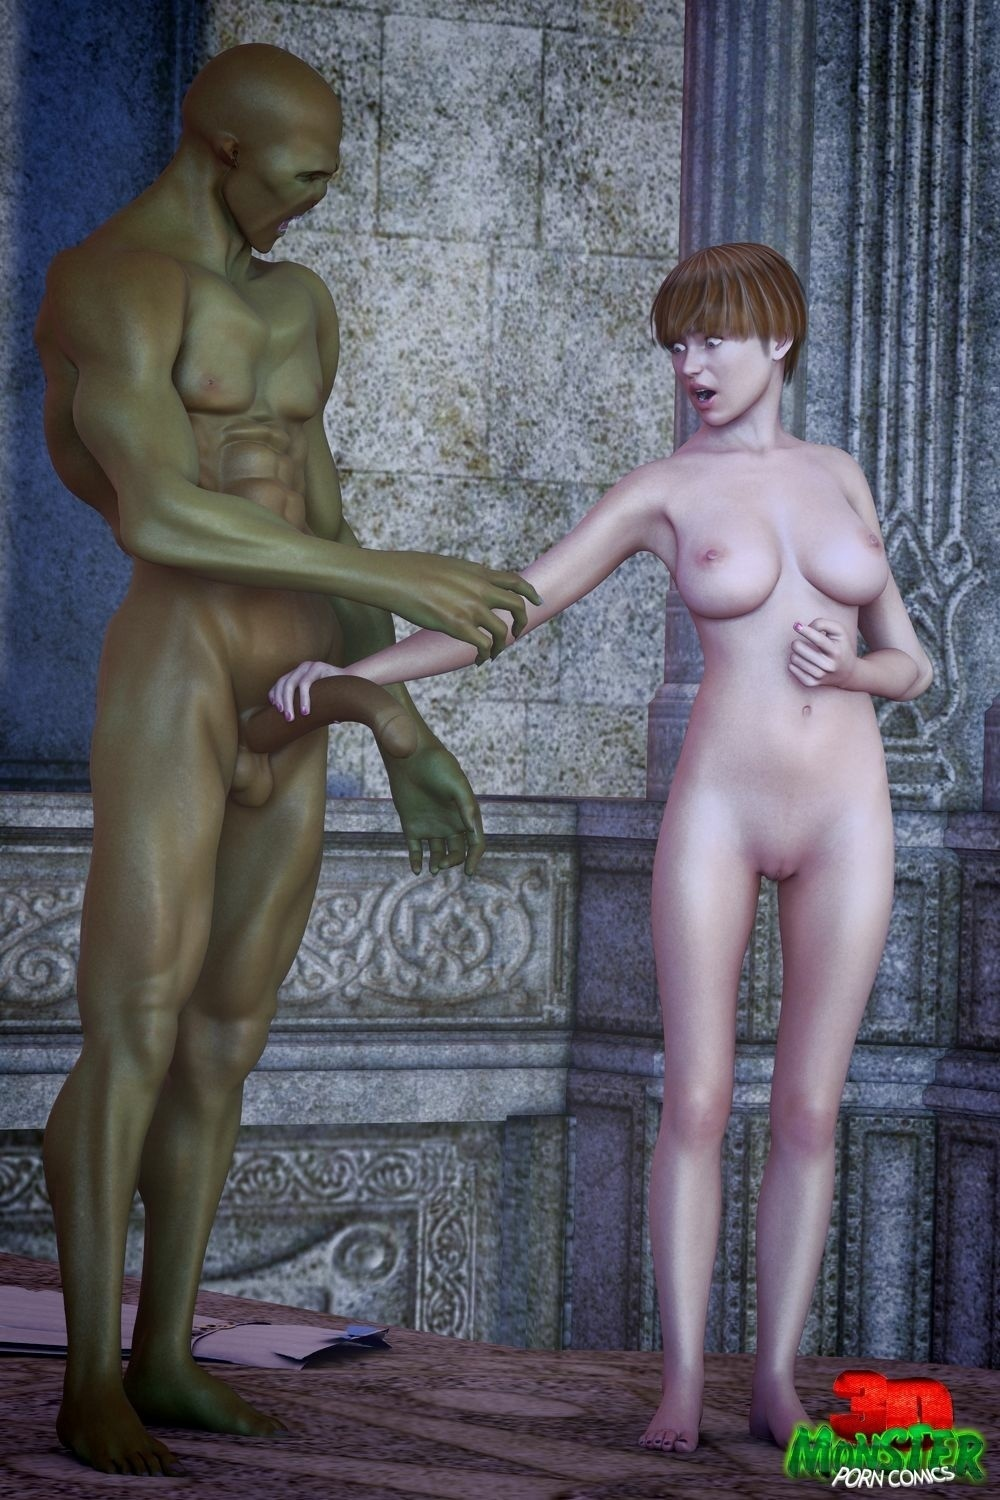 3DMonsterPornComics-Girl and Green Goblin